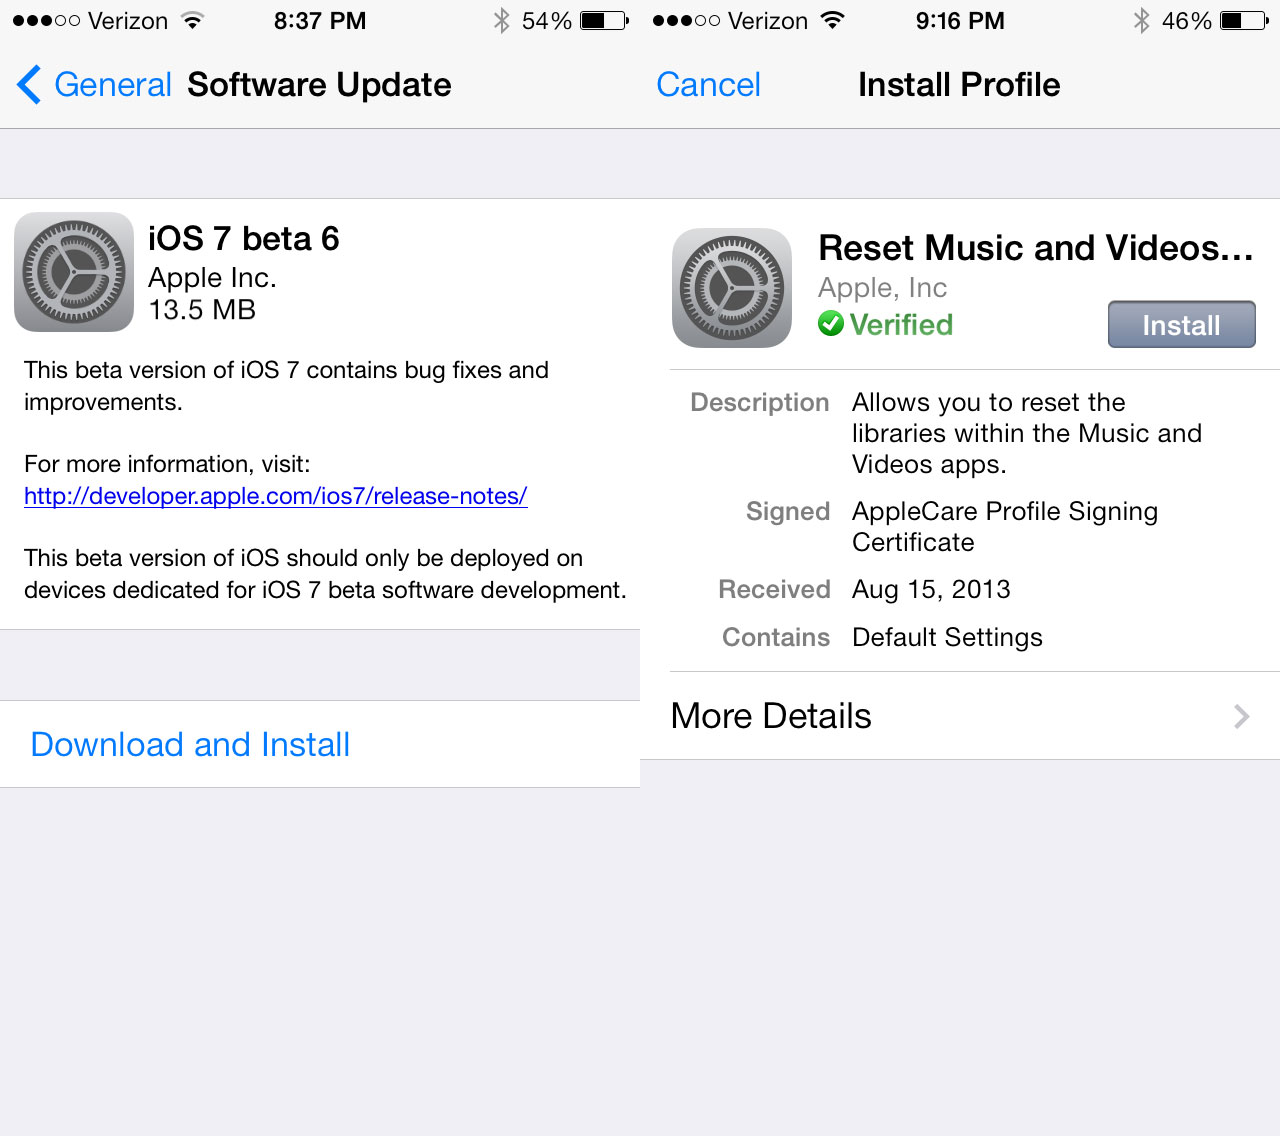 Download iOS 7 beta 6 for iPhone iPad and iPod touch